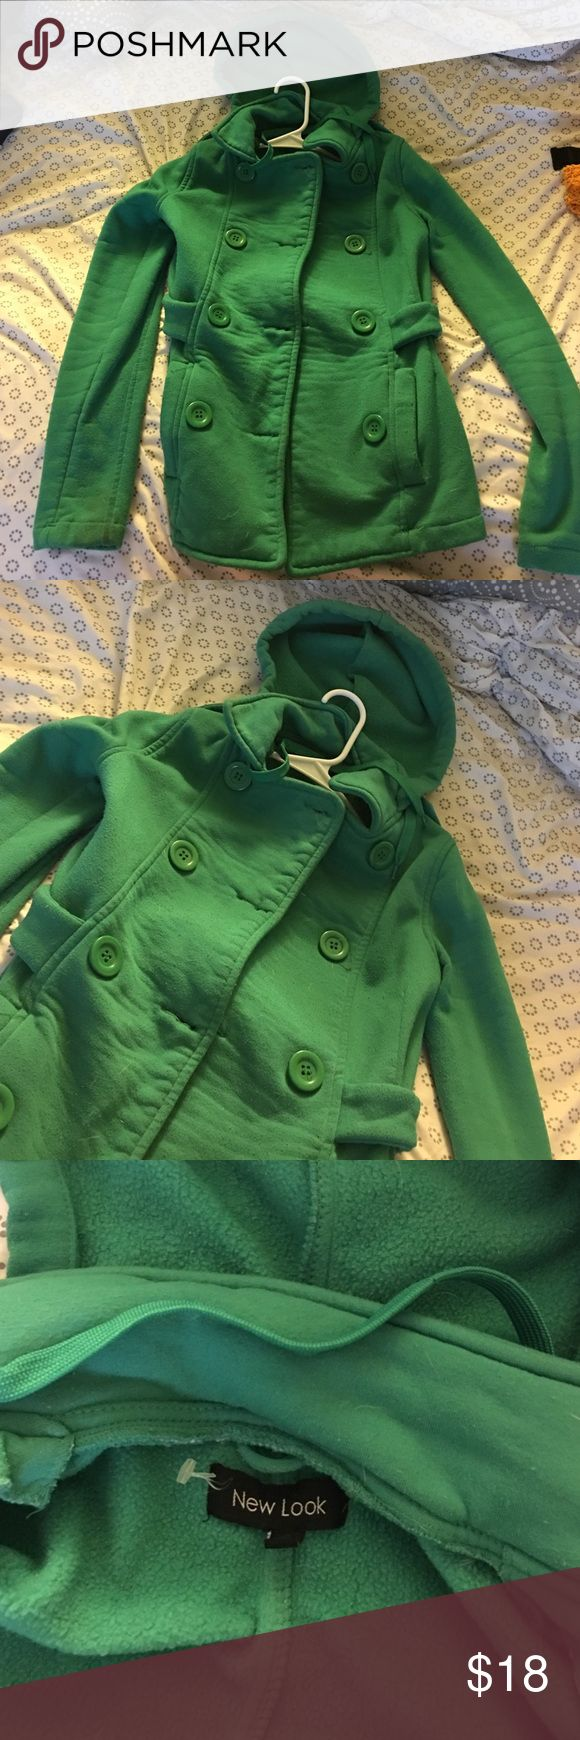 Green trench coat with good Green trench coat style with big buttons and hood New Look Jackets & Coats Trench Coats